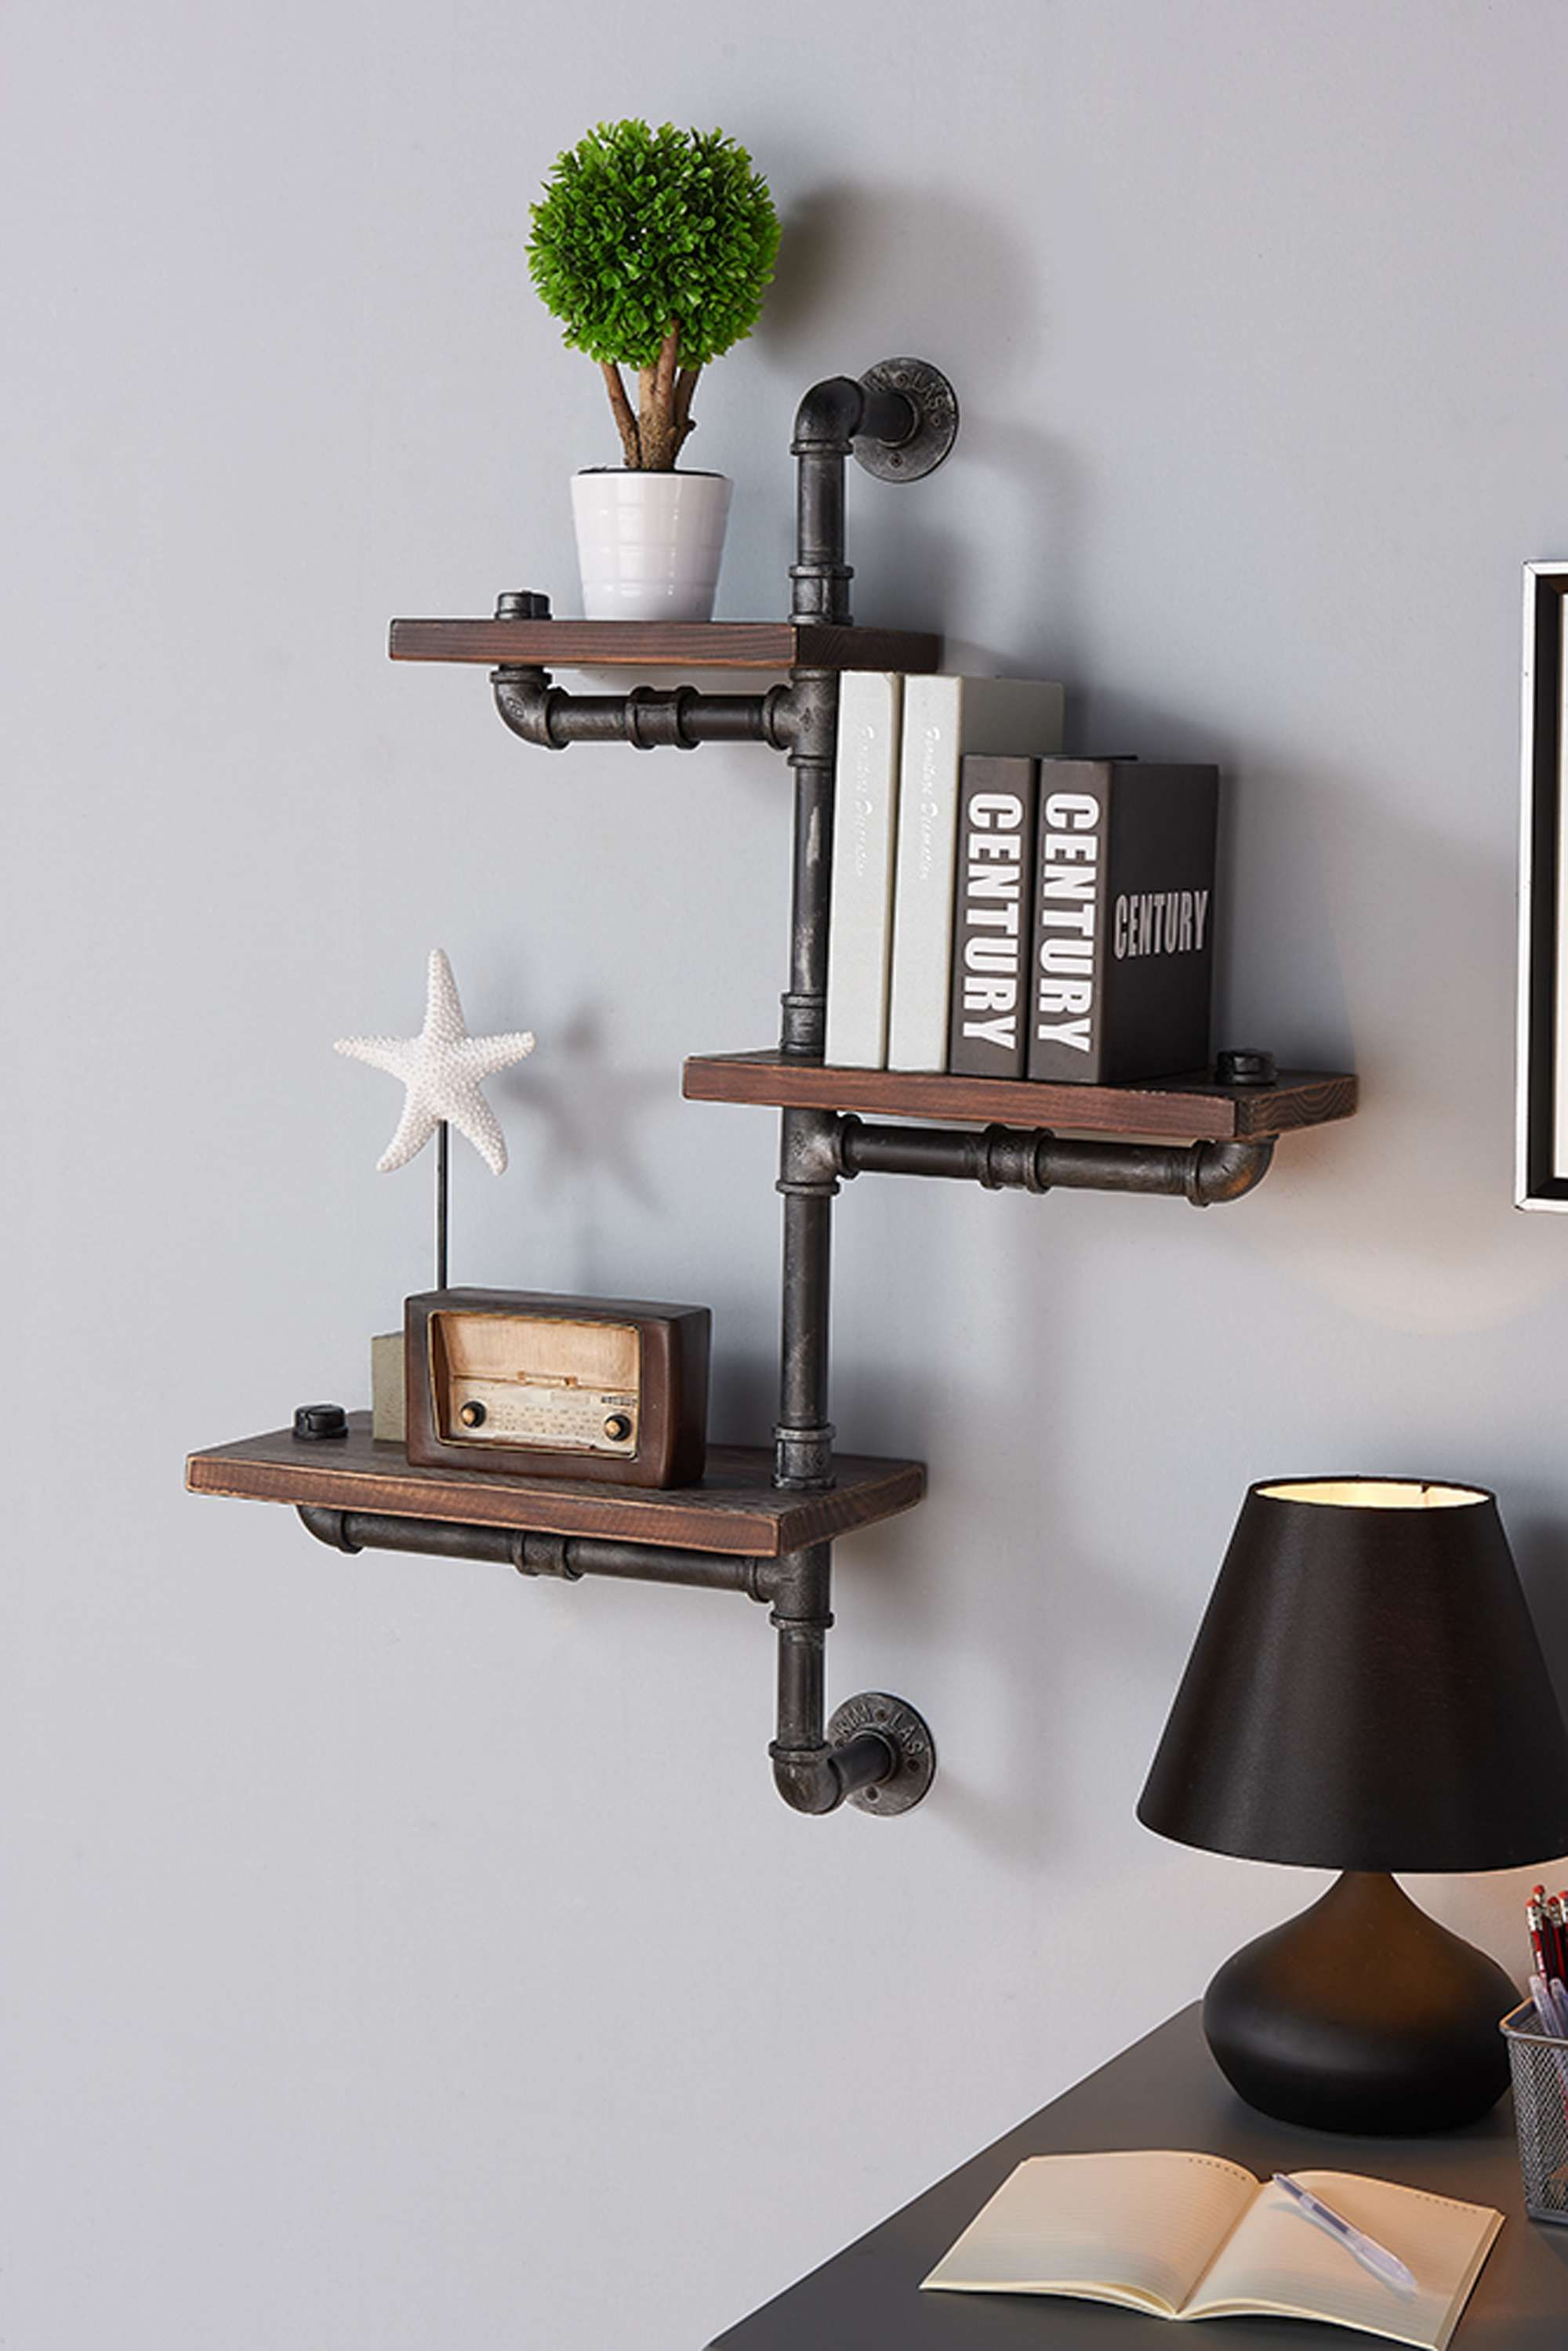 Orton Gray Walnut Finish 30 Industrial Pine Wood Floating Wall Shelf Floating Wall Shelves Brown Living Room Decor Brown Living Room